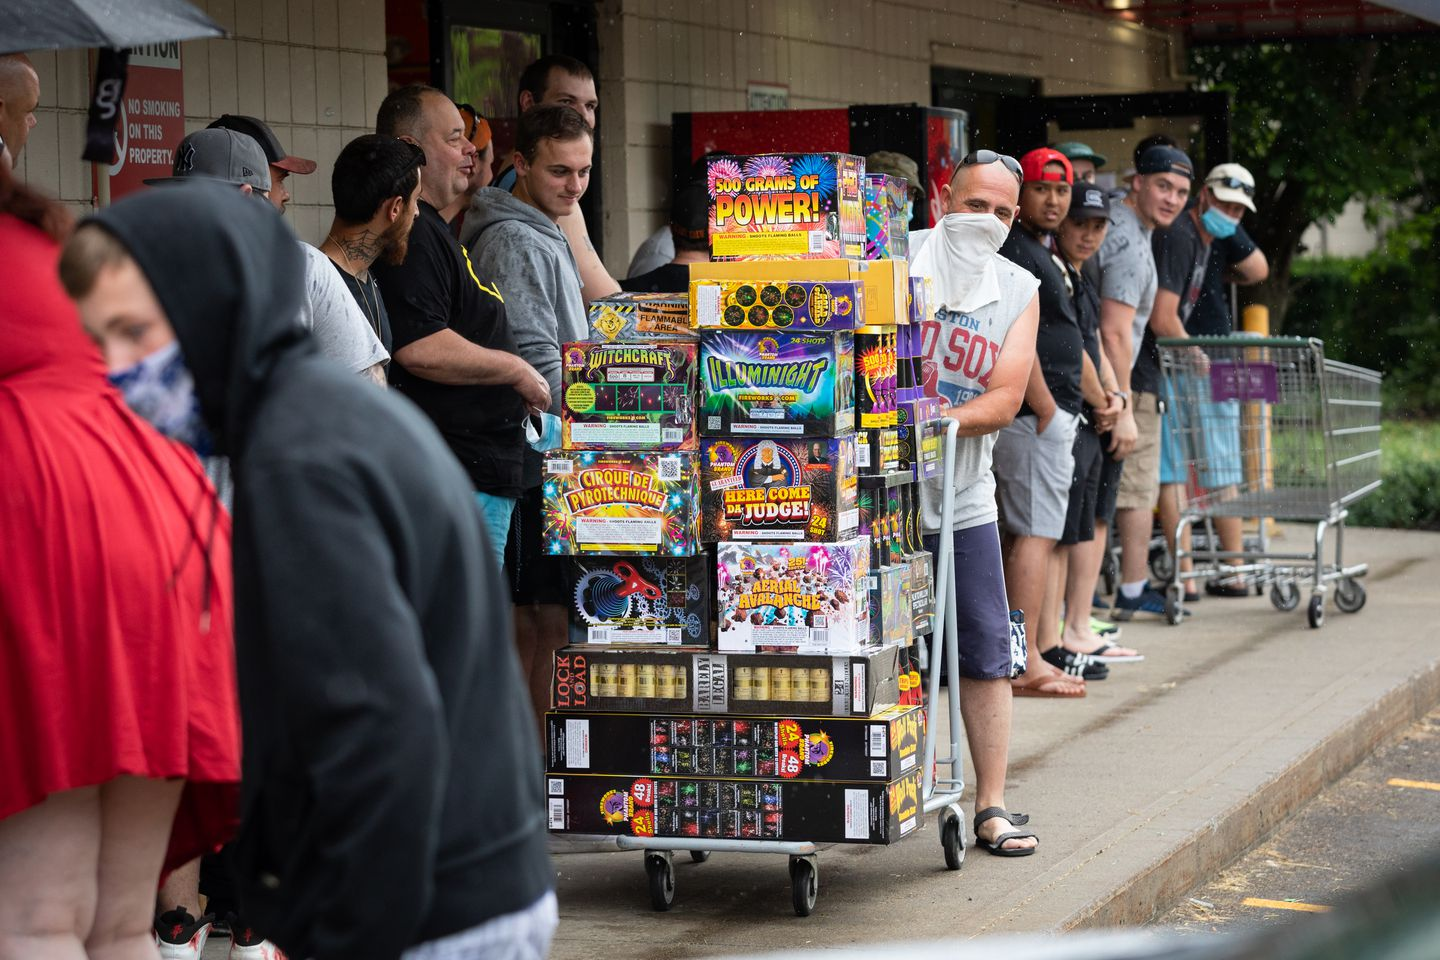 A Massachusetts man, who declined to identify himself, navigated a cart of fireworks past a long line Sunday in Londonderry, N.H.